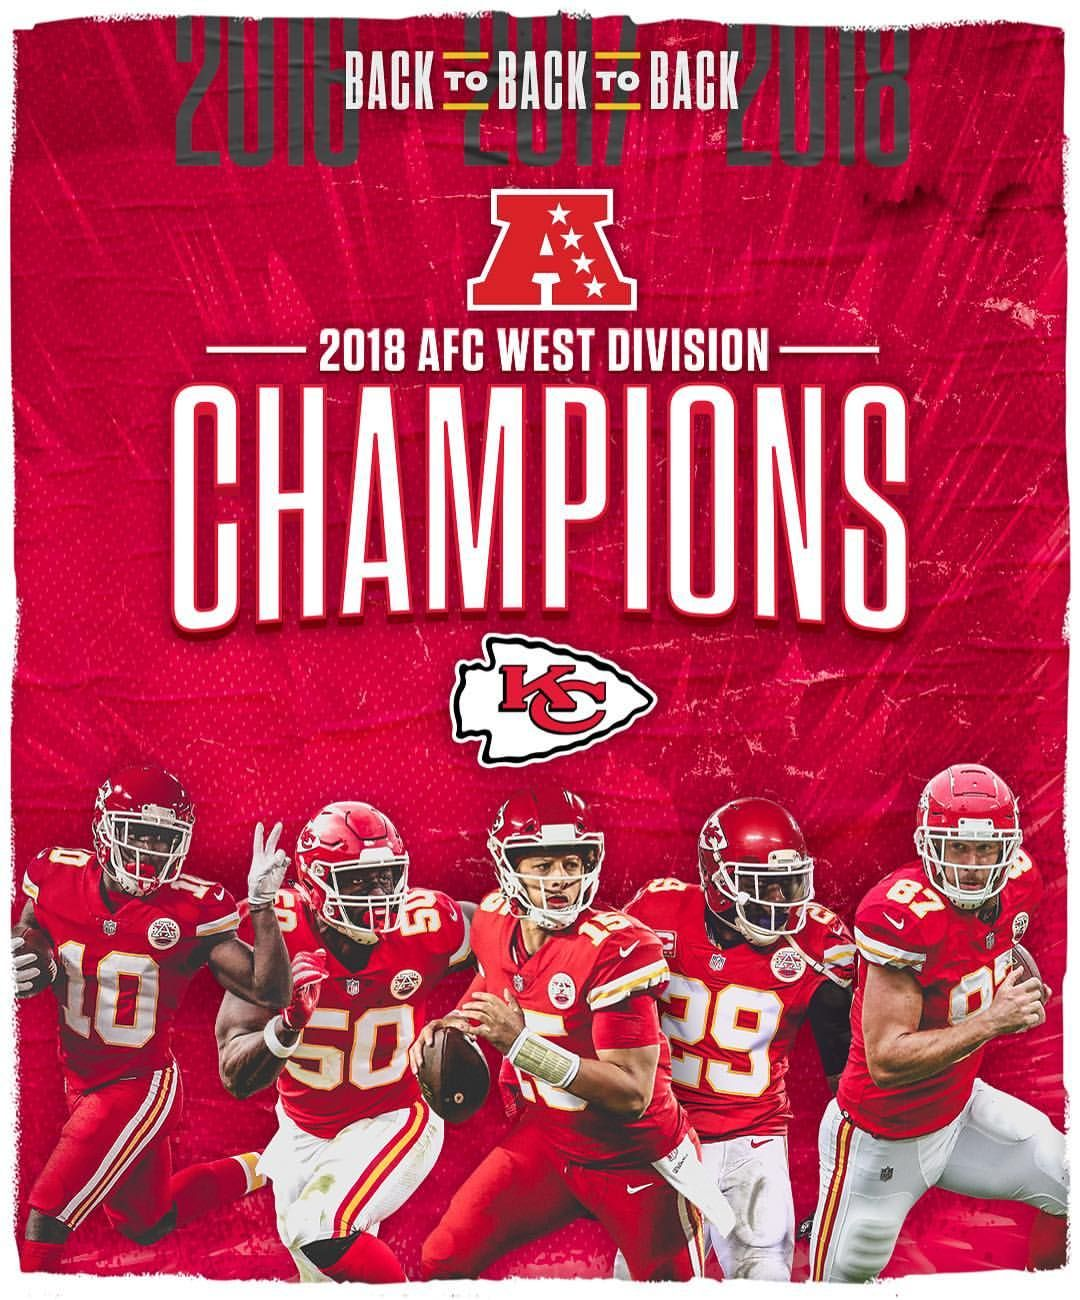 We Going Back To Back To Back Kansas City Chiefs Kansas City Chiefs Football Kansas Chiefs